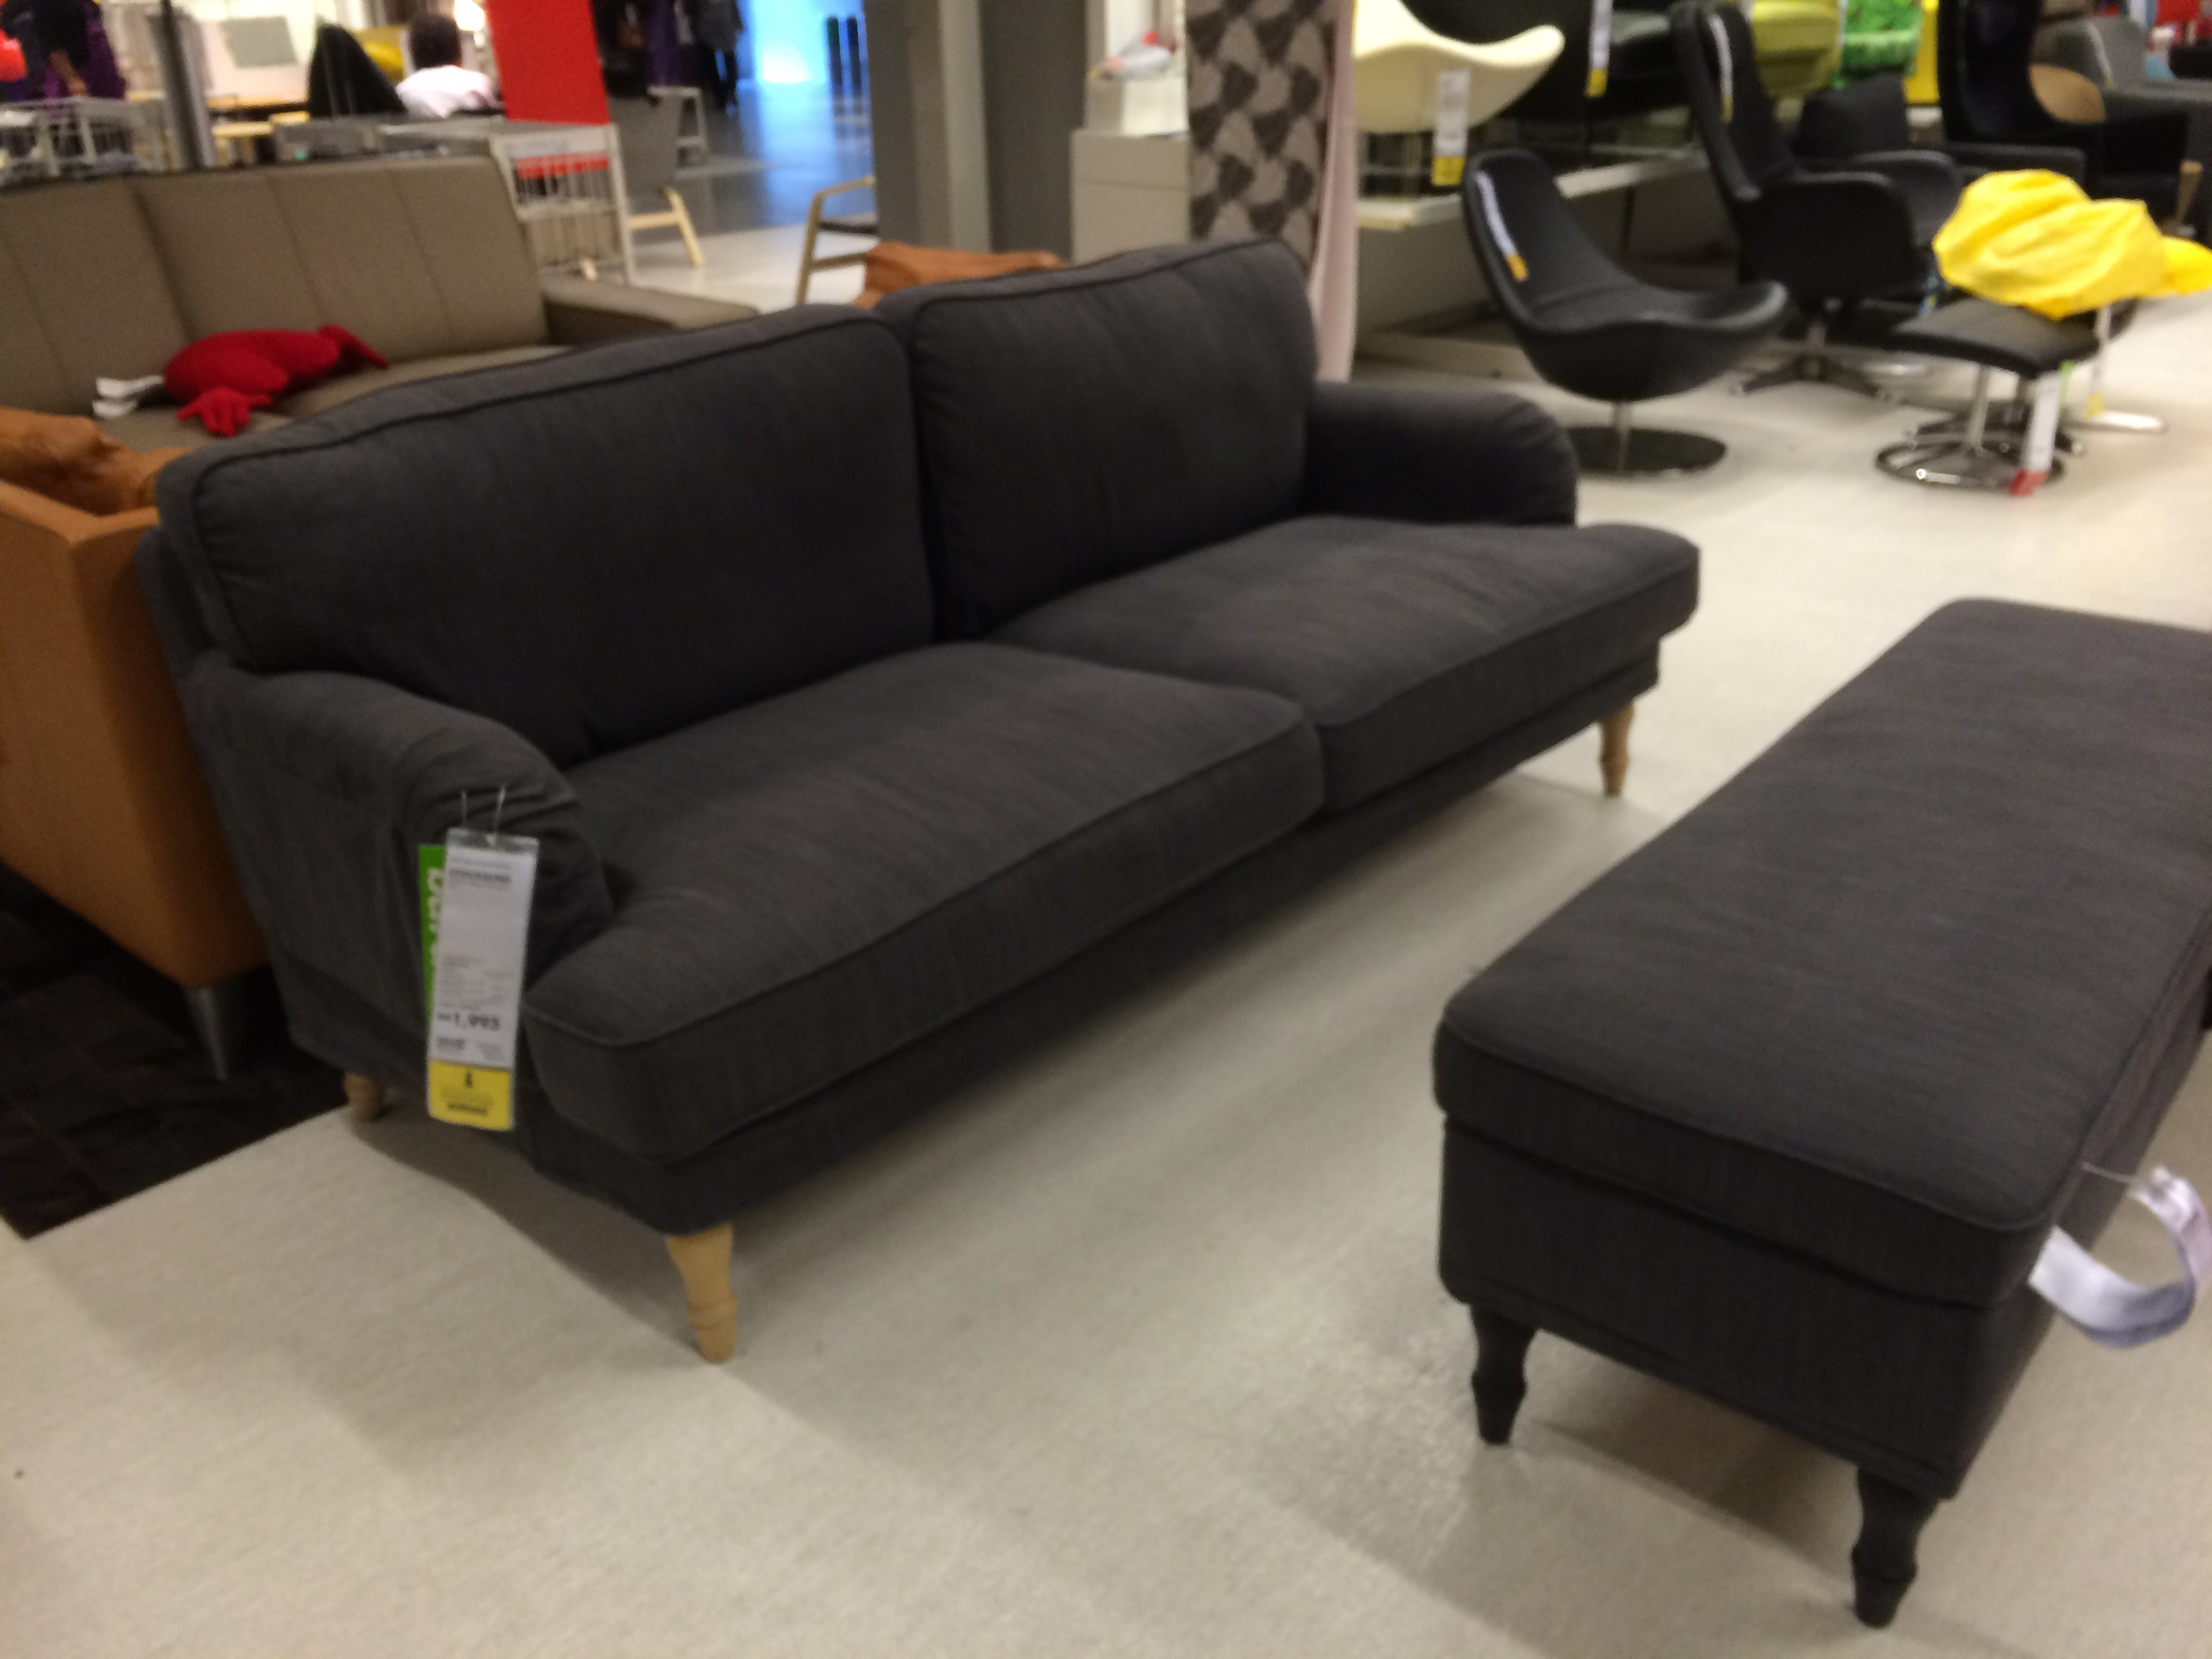 english roll arm sofa 2 seat slipcover ikea stocksund series (2014) review - new at ikea!